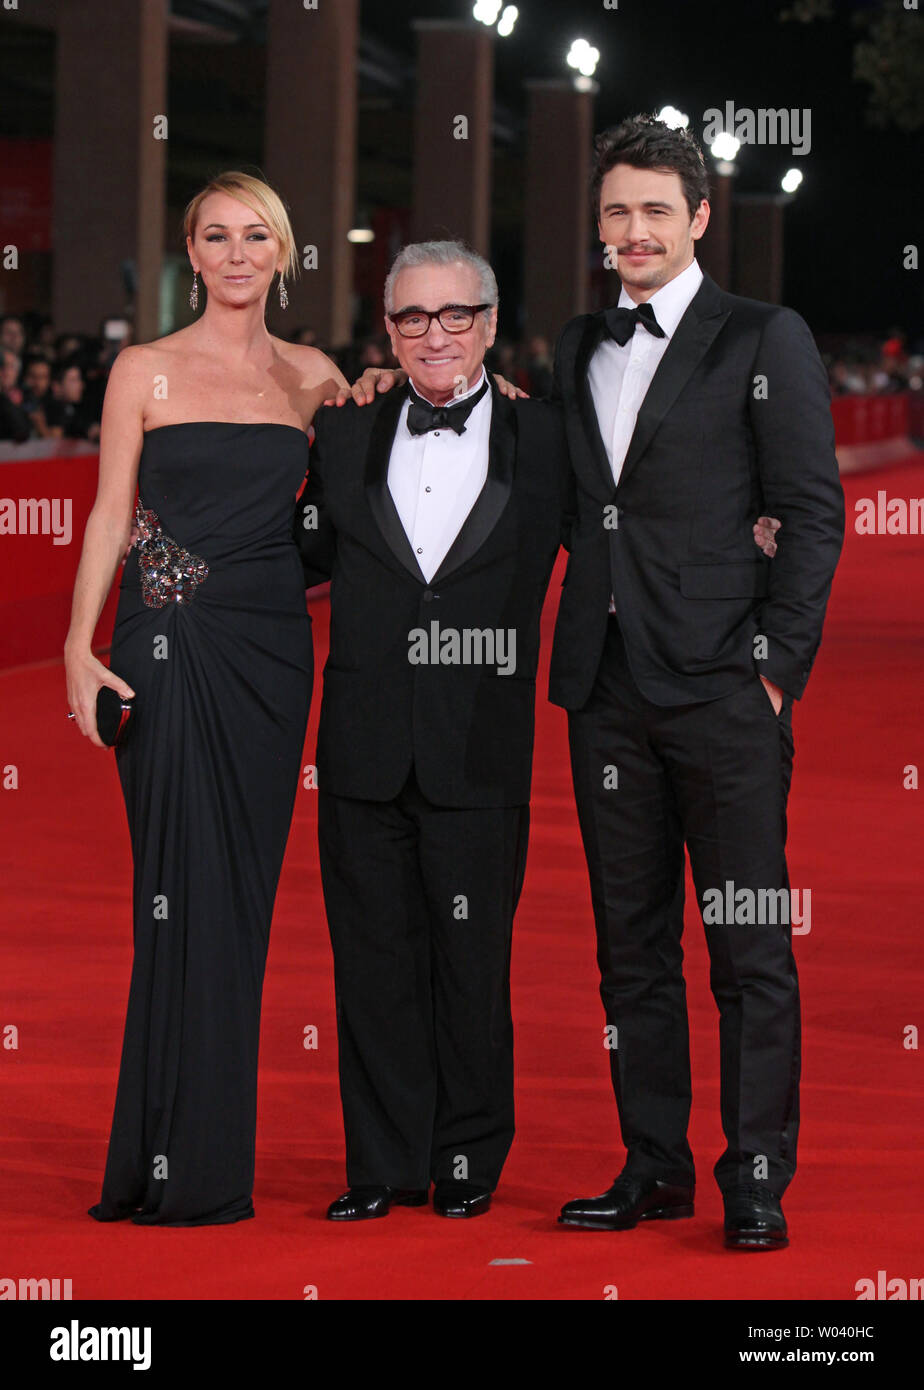 Frida Giannini (L), Martin Scorsese (C) and James Franco arrive on the red carpet before the screening of a digitally restored version of the 1960 classic film 'La Dolce Vita' during the 5th Rome International Film Festival in Rome on October 30, 2010.   UPI/David Silpa - Stock Image